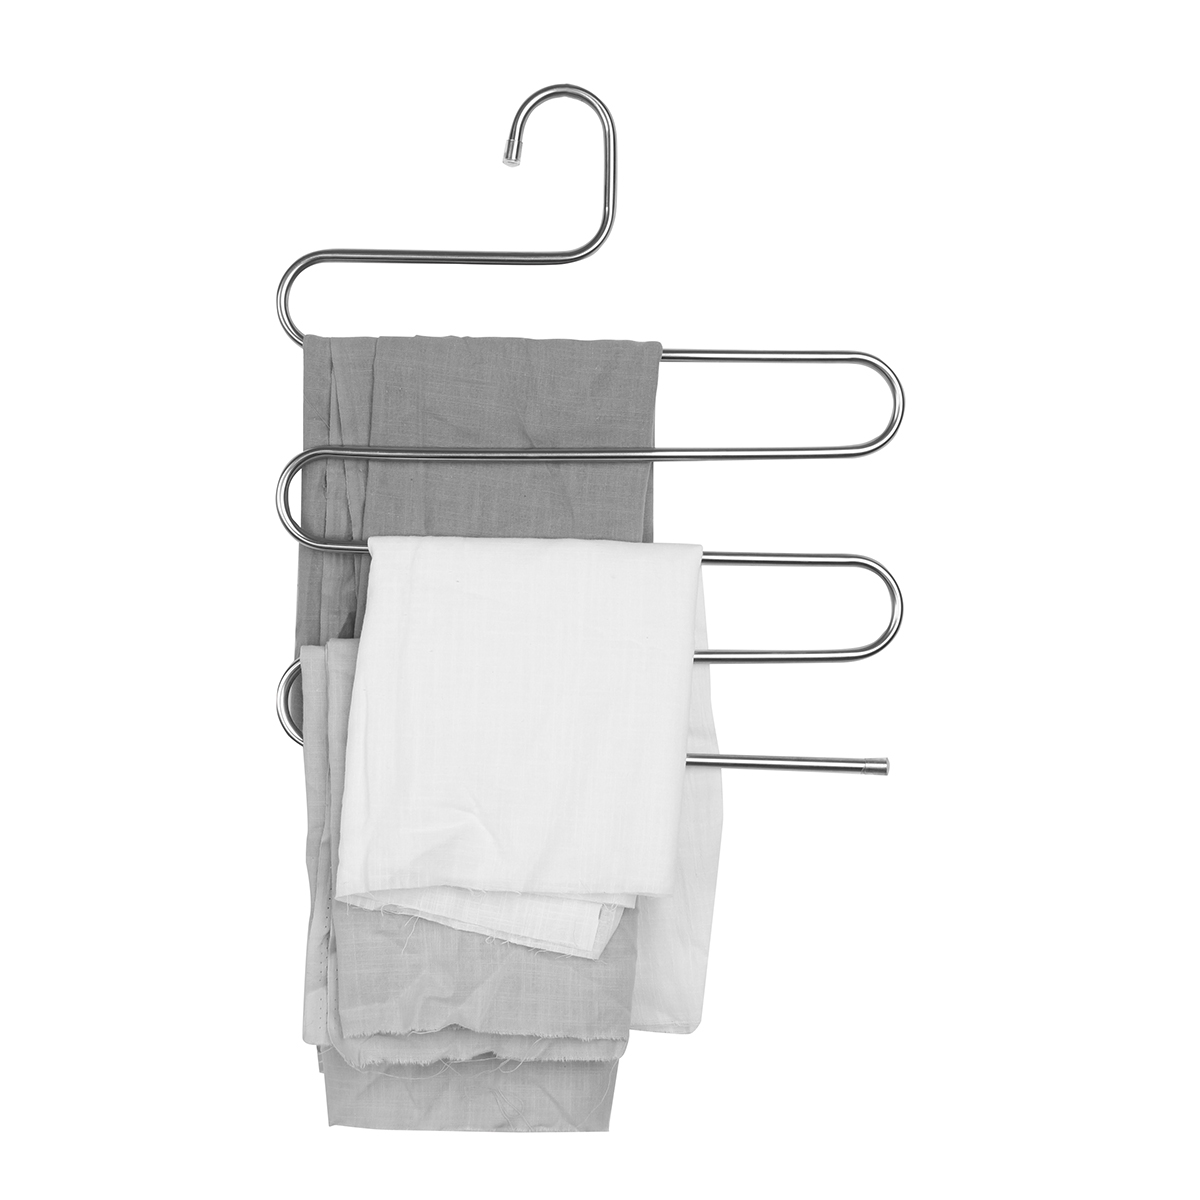 5 Layers Pants Hanger Trousers Towels Hanging Cloth Clothing Rack Space Saver